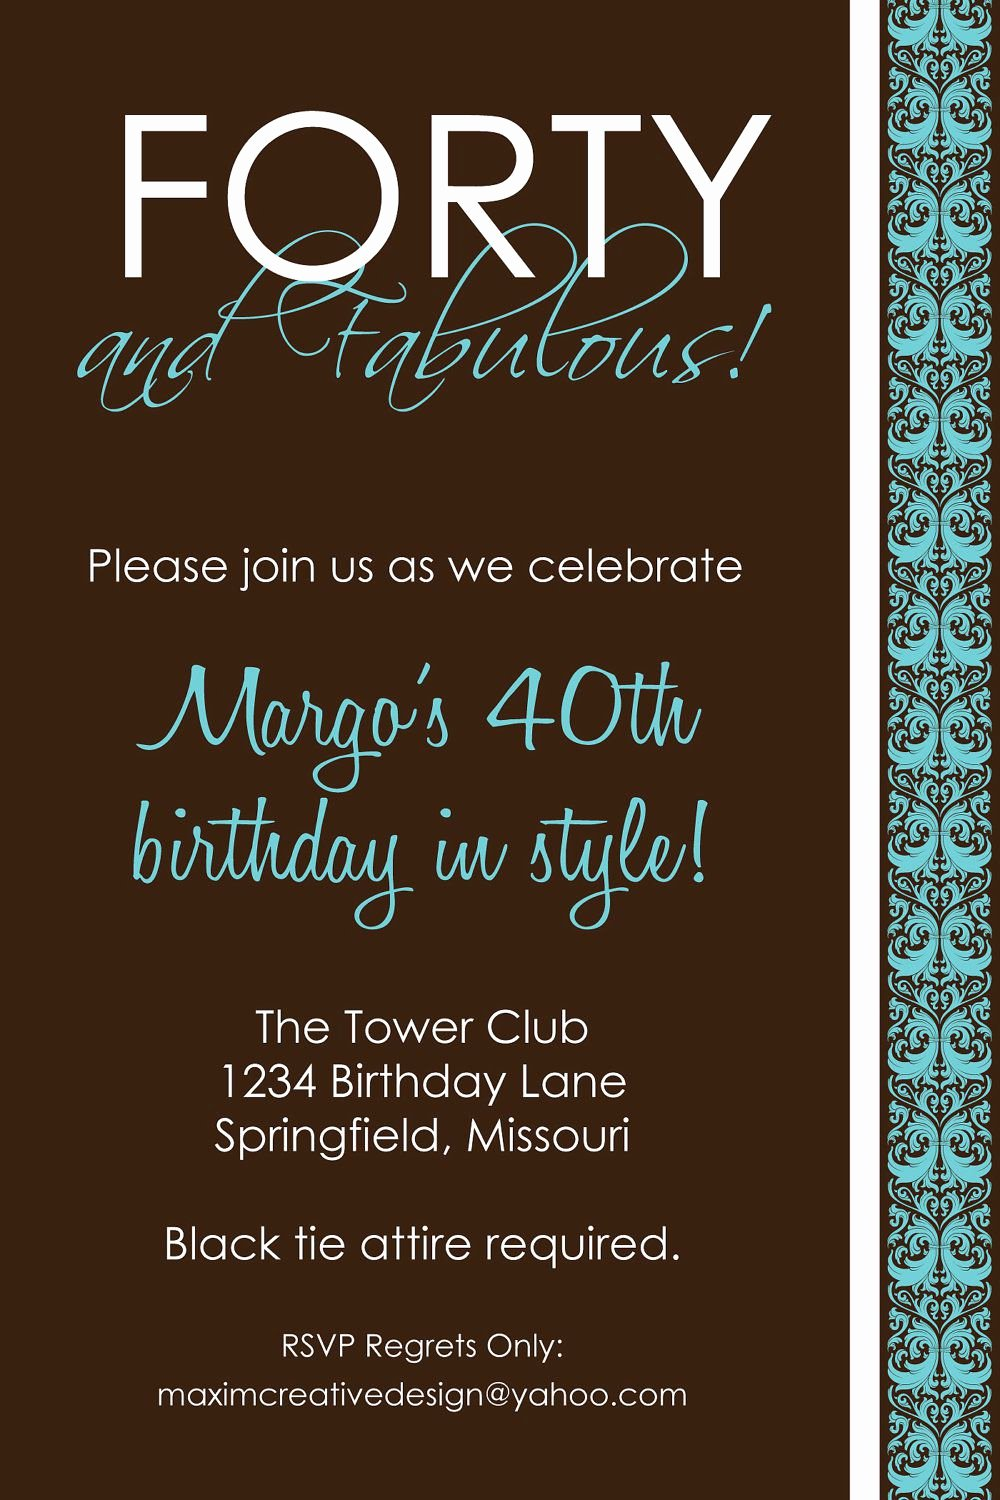 Birthday Invitations Funny Birthday Invites for Adults